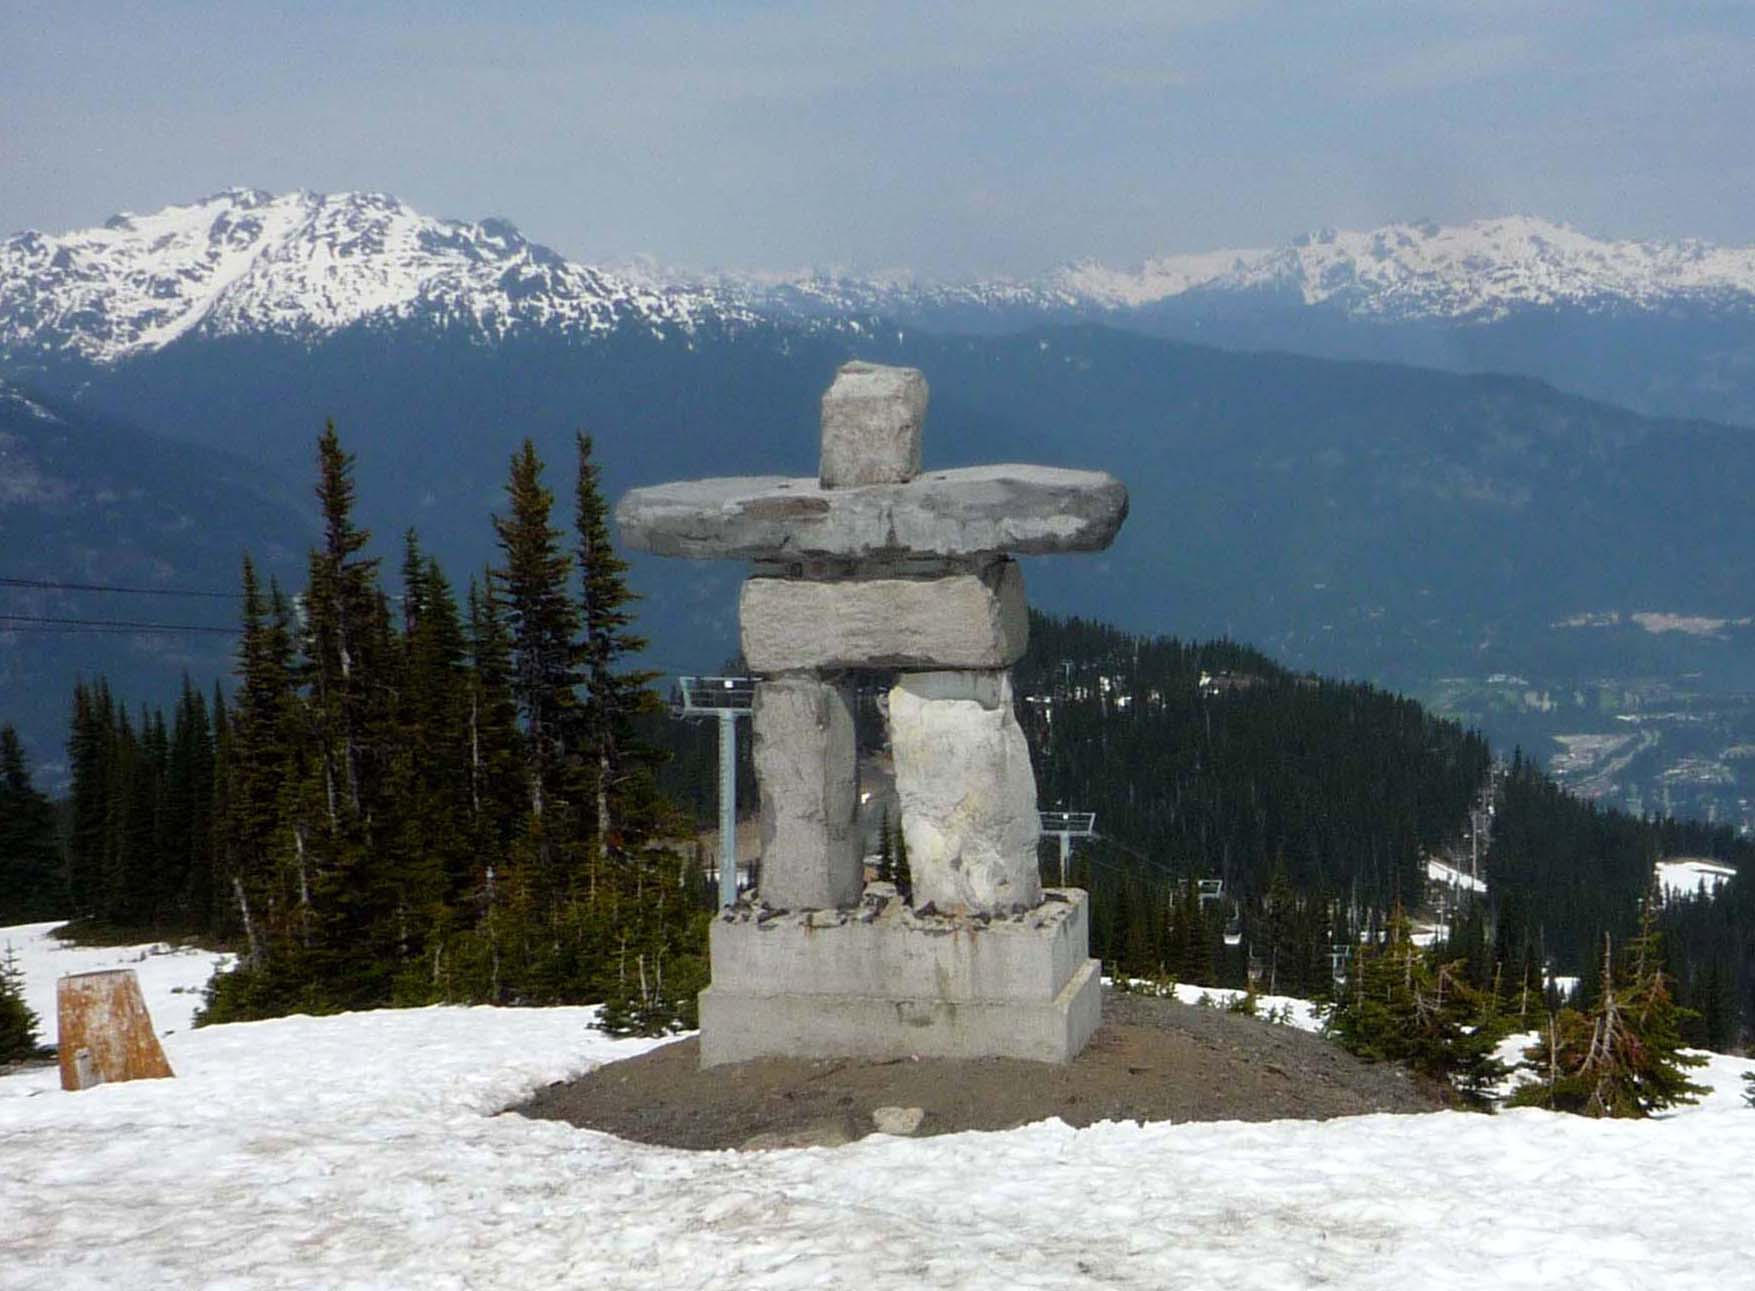 Statue of '''Ilanaaq the Inunnguaq''', mascot of the '''2010 Winter Olympics''', located at the top of the Whistler Village Lift at the Whistler Blackcomb